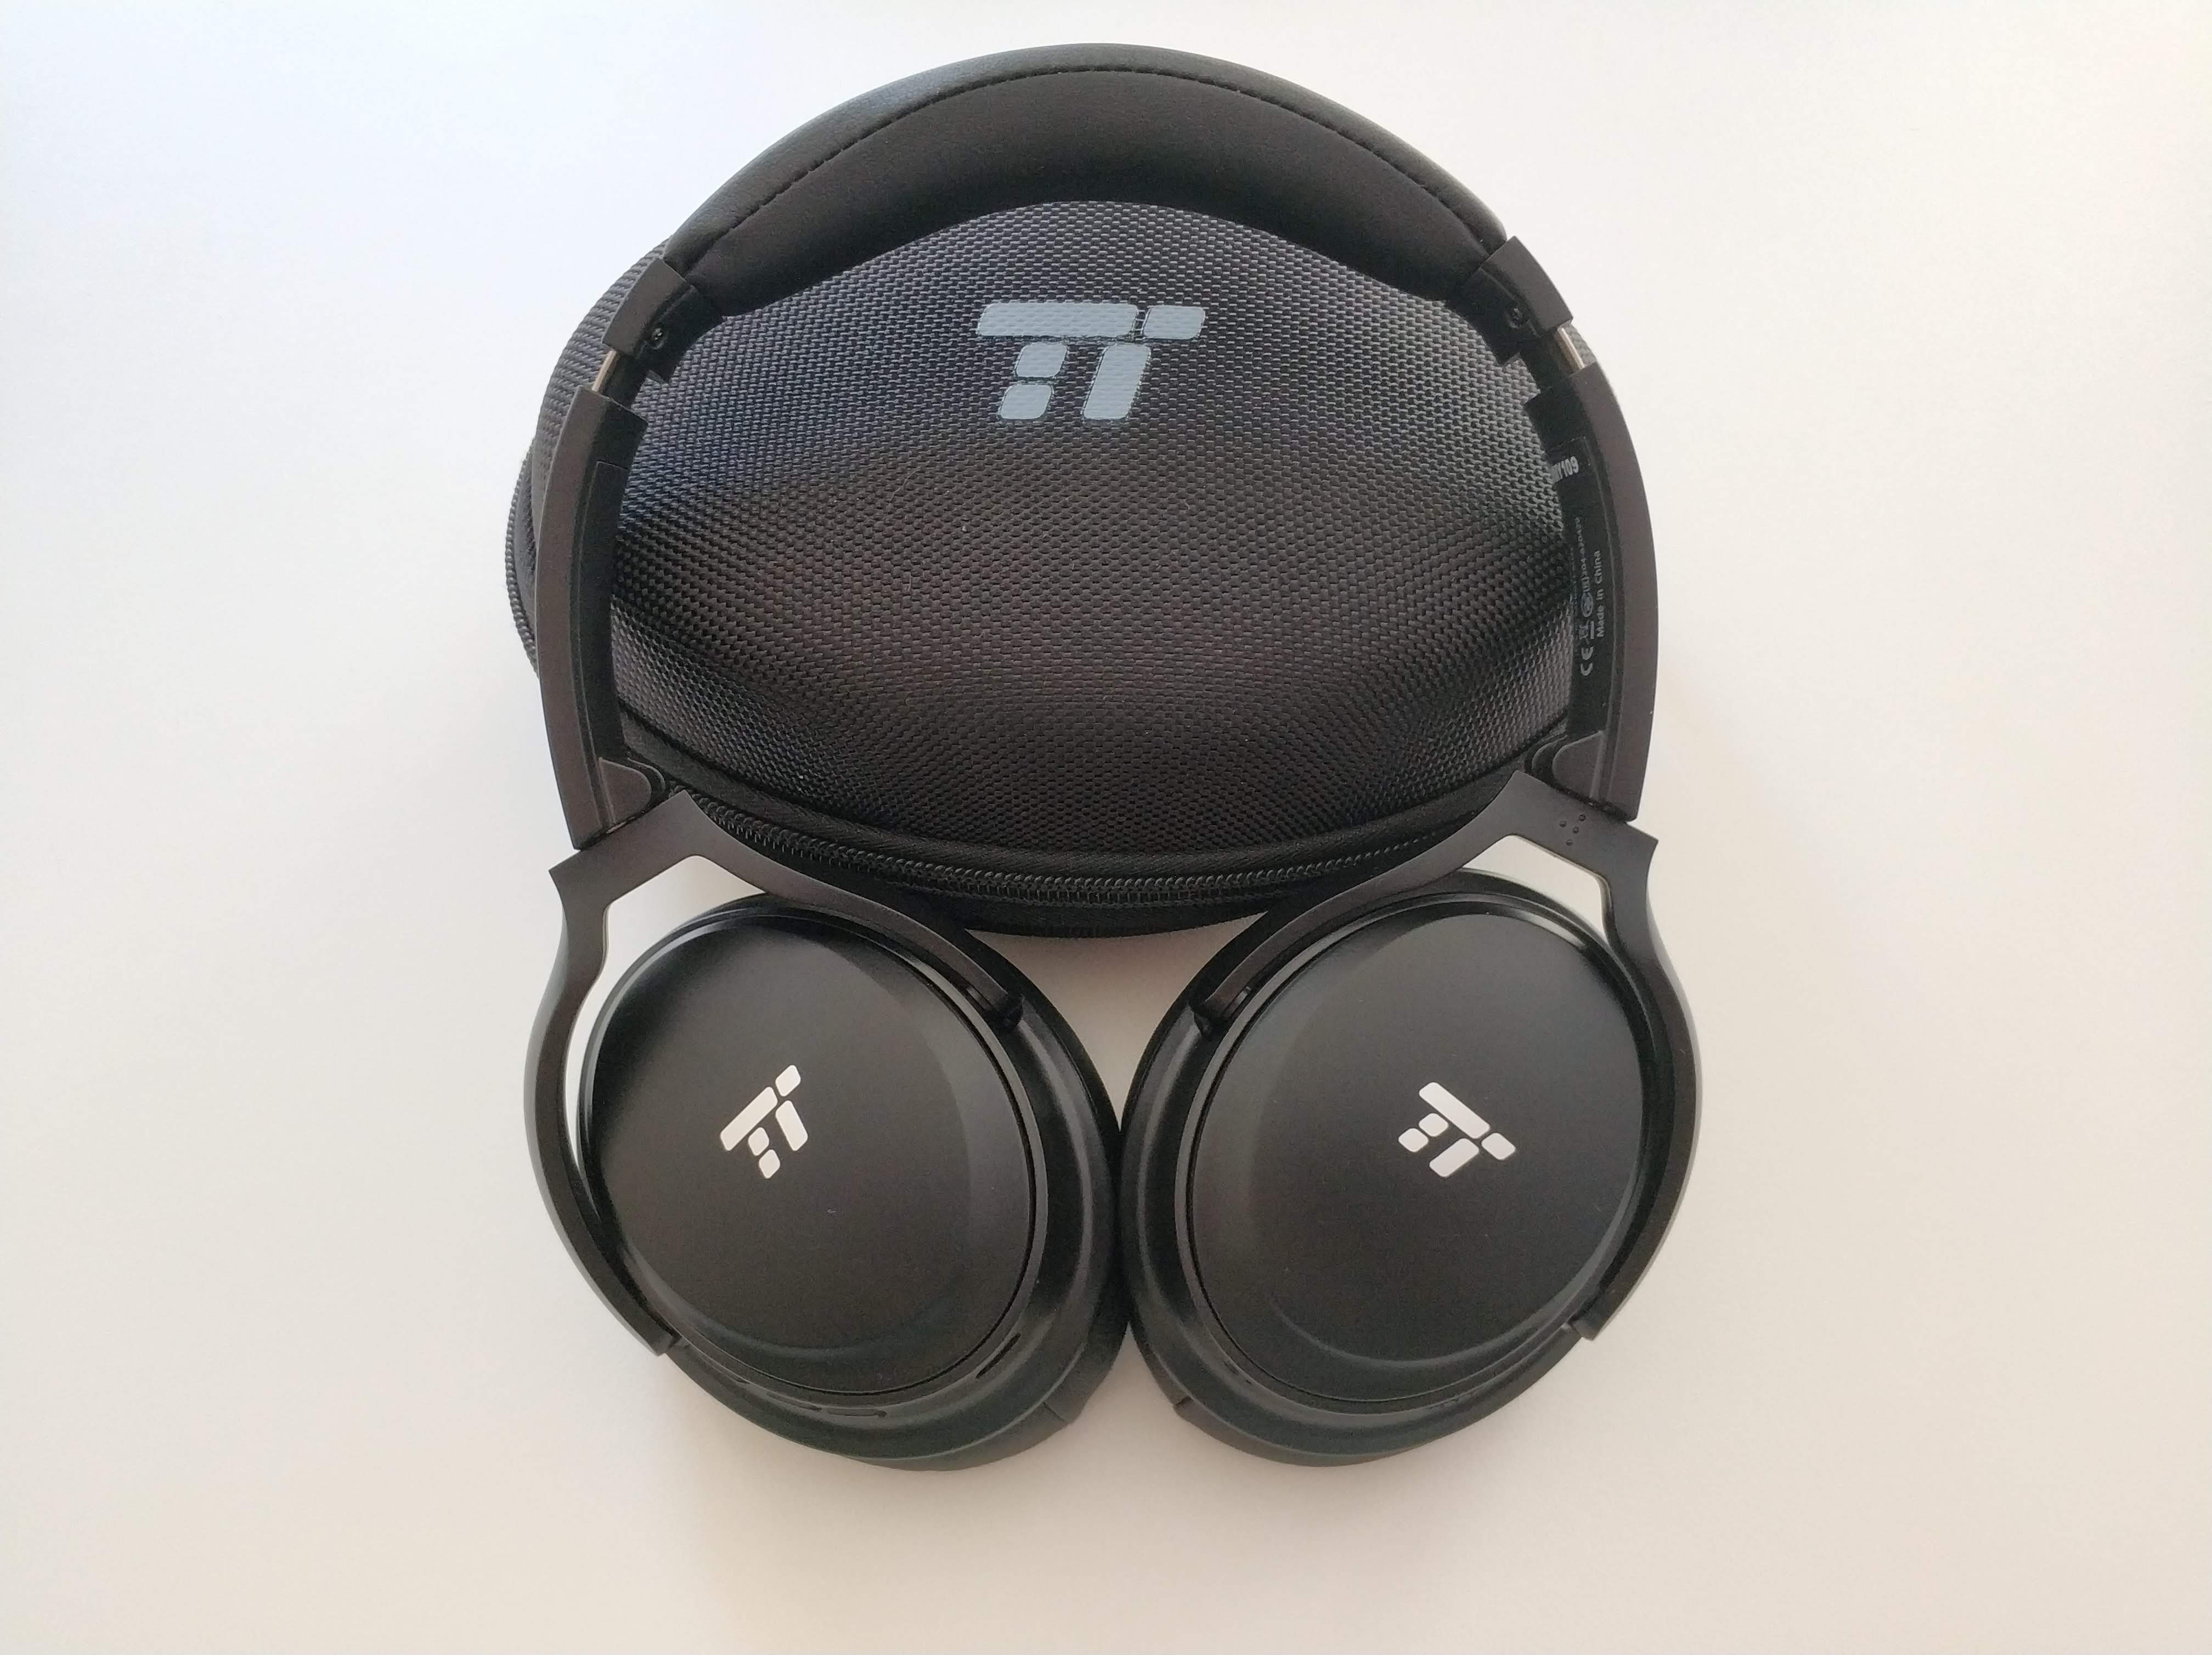 Test du casque Bluetooth TaoTronics TT-BH22 : la réduction de bruit ...